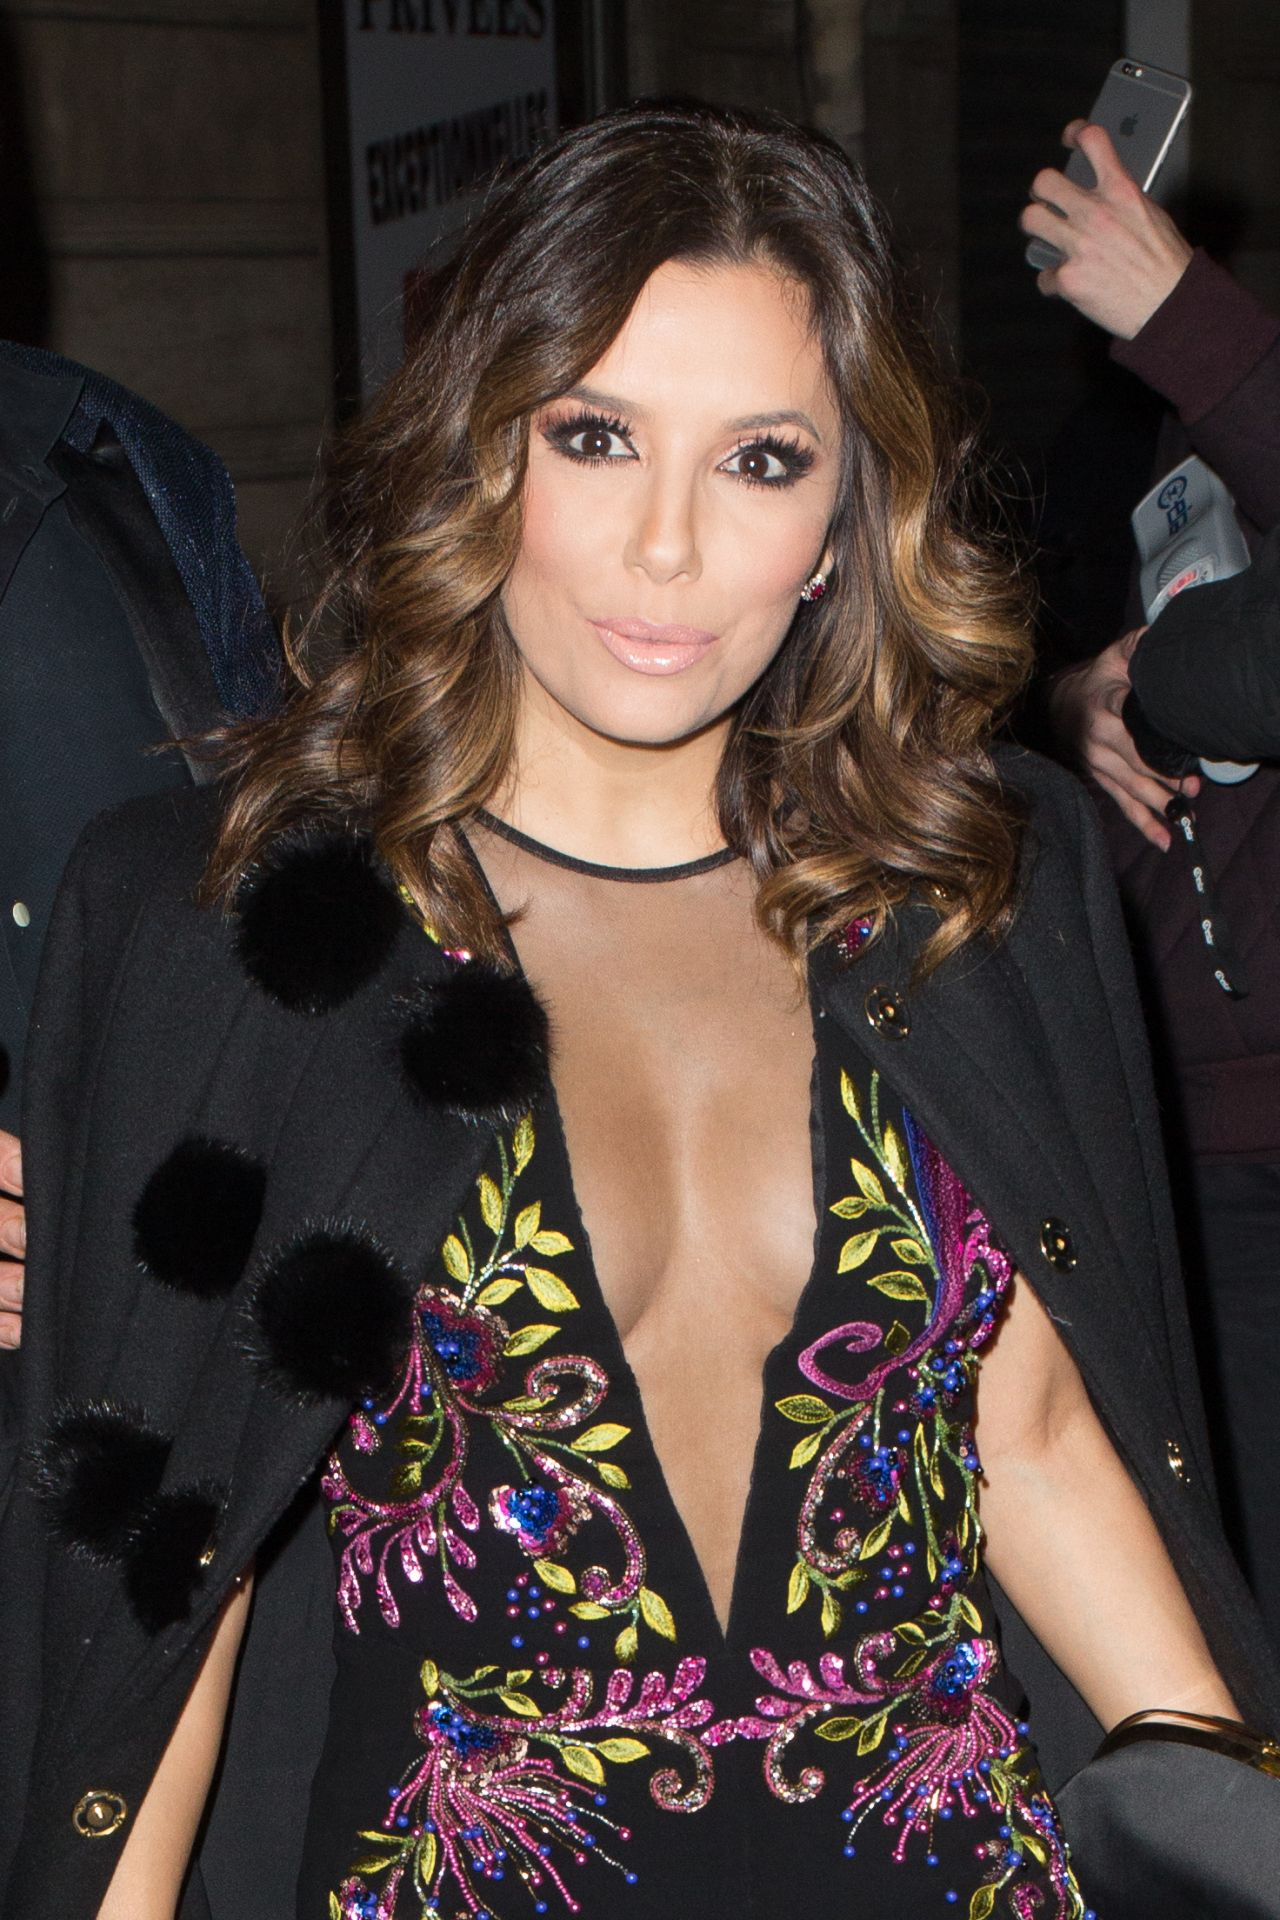 Eva Longoria - Arriving at a L'Oreal Event in Paris 12/15 ... Eva Longoria